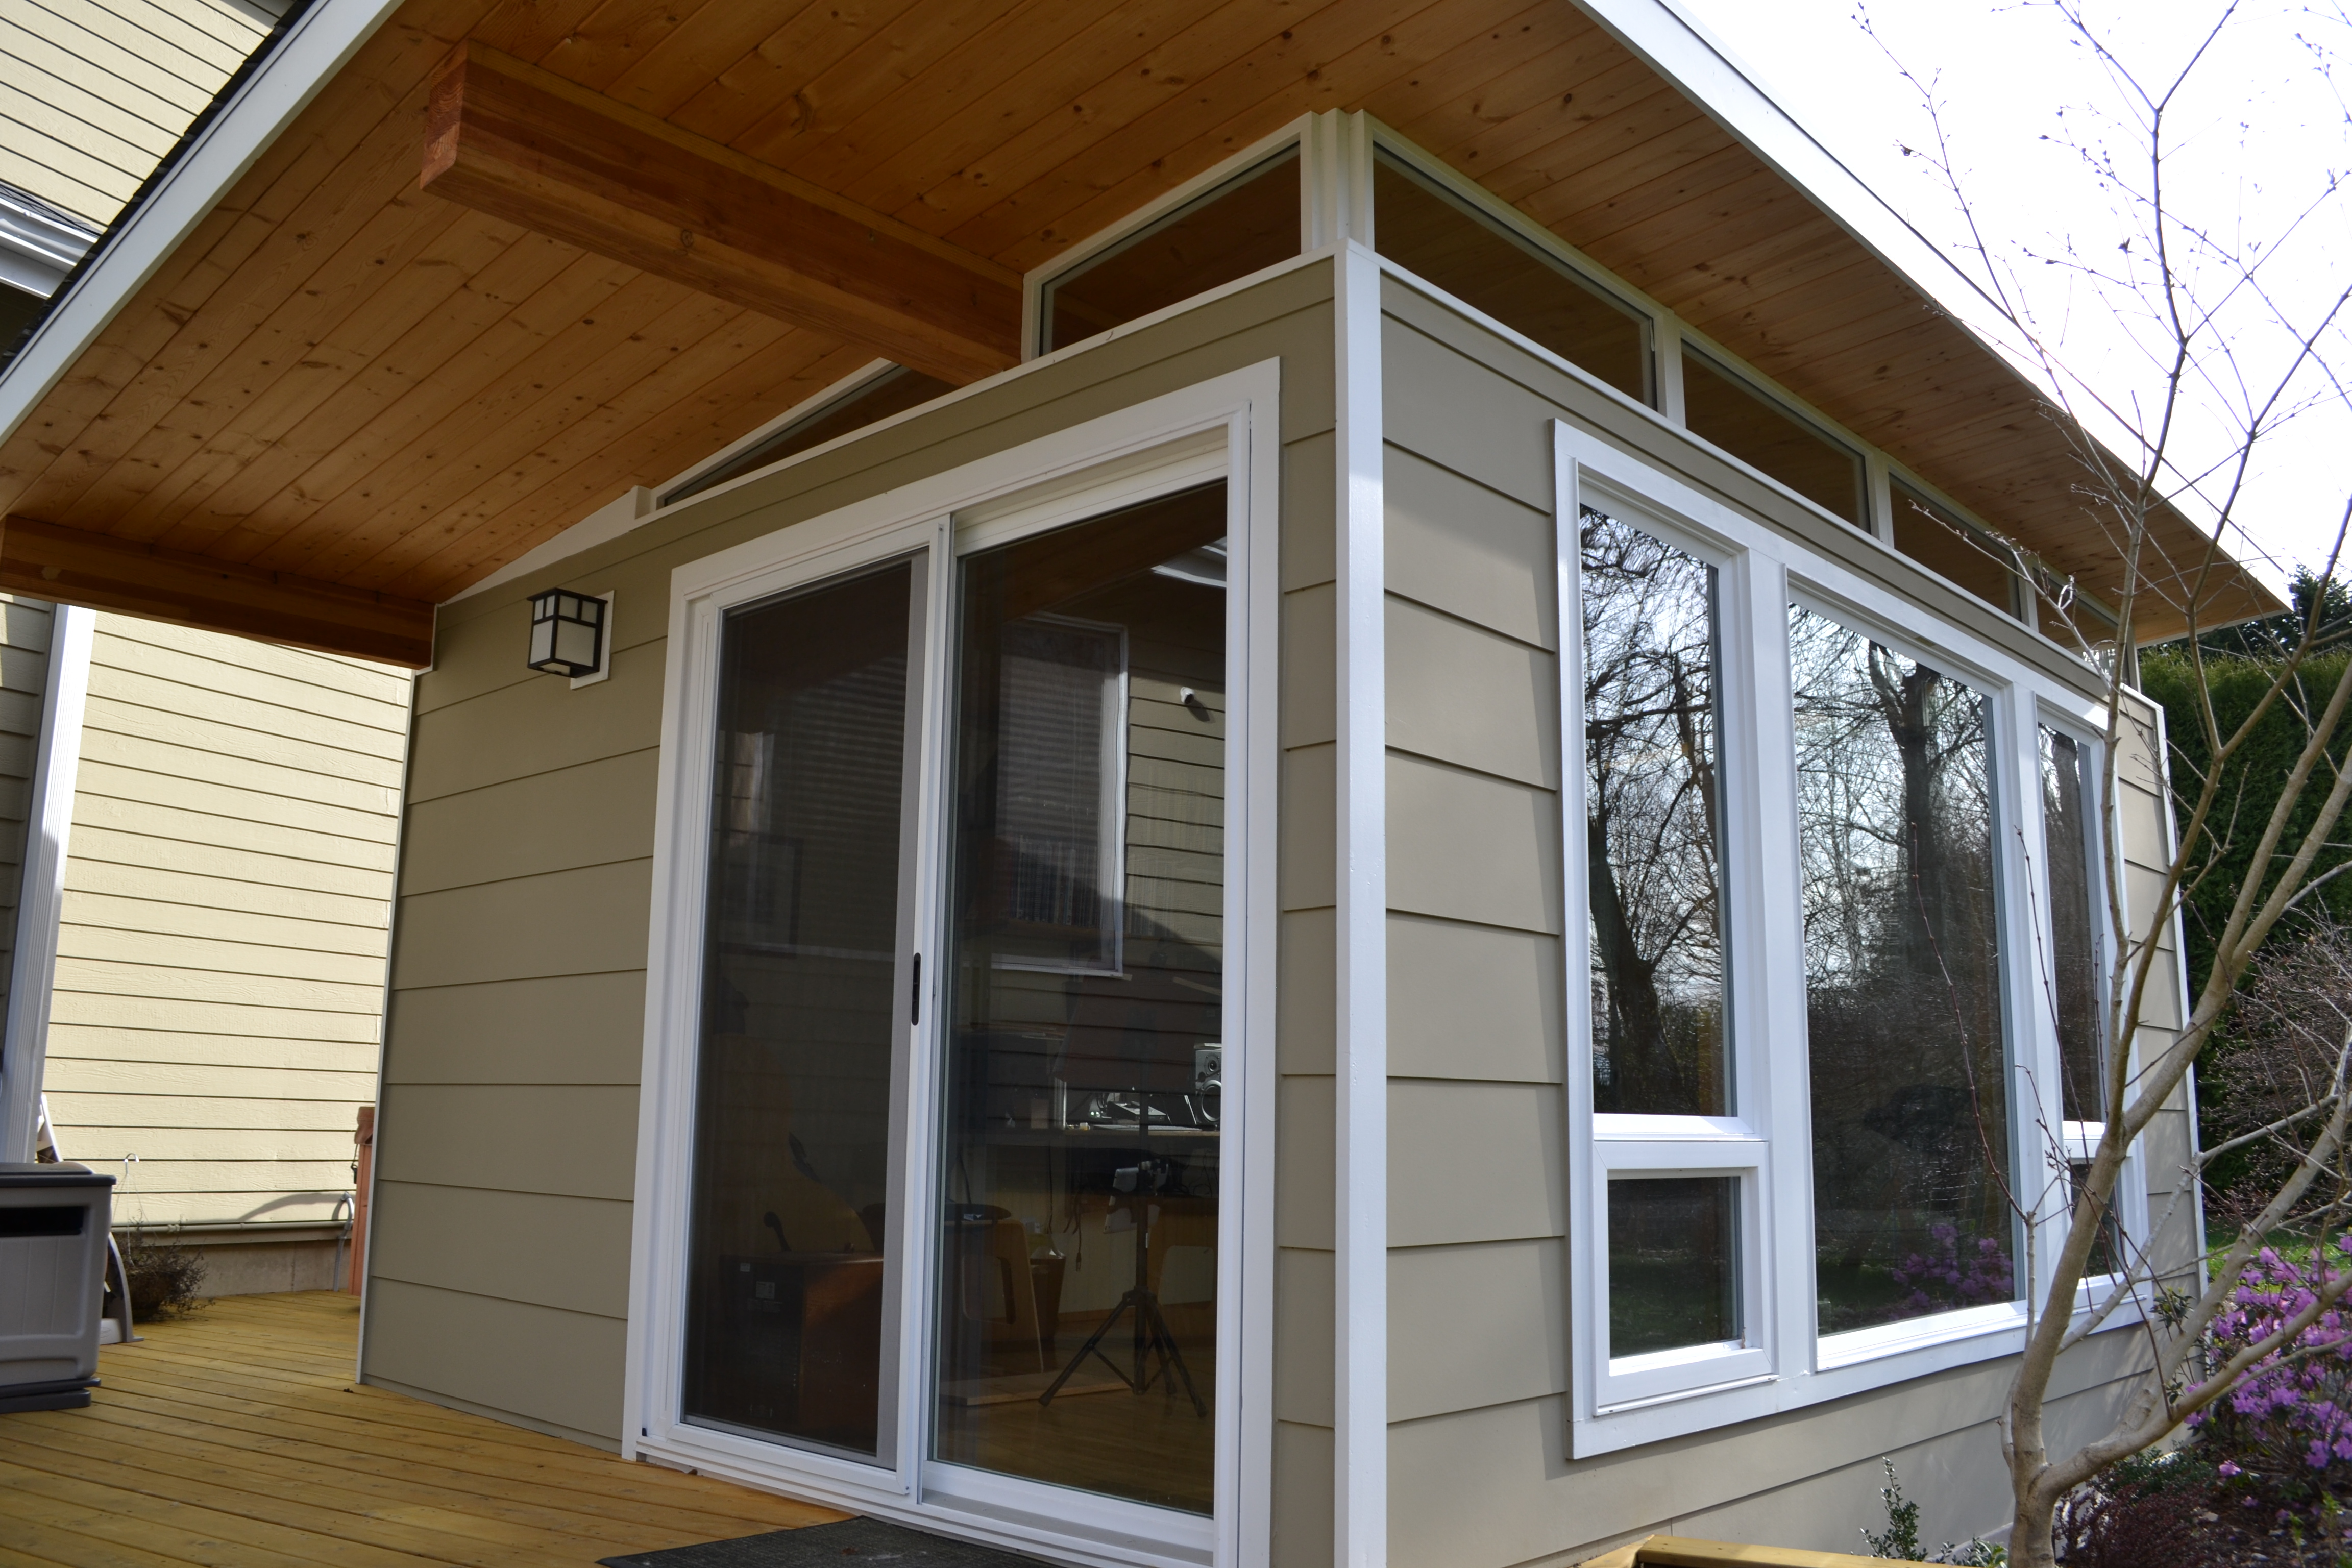 At Modern Shed, We Have Done Extensive Research To Find The Most  Appropriate Window And Door Lines To Meet Our Customeru0027s Needs And Style.